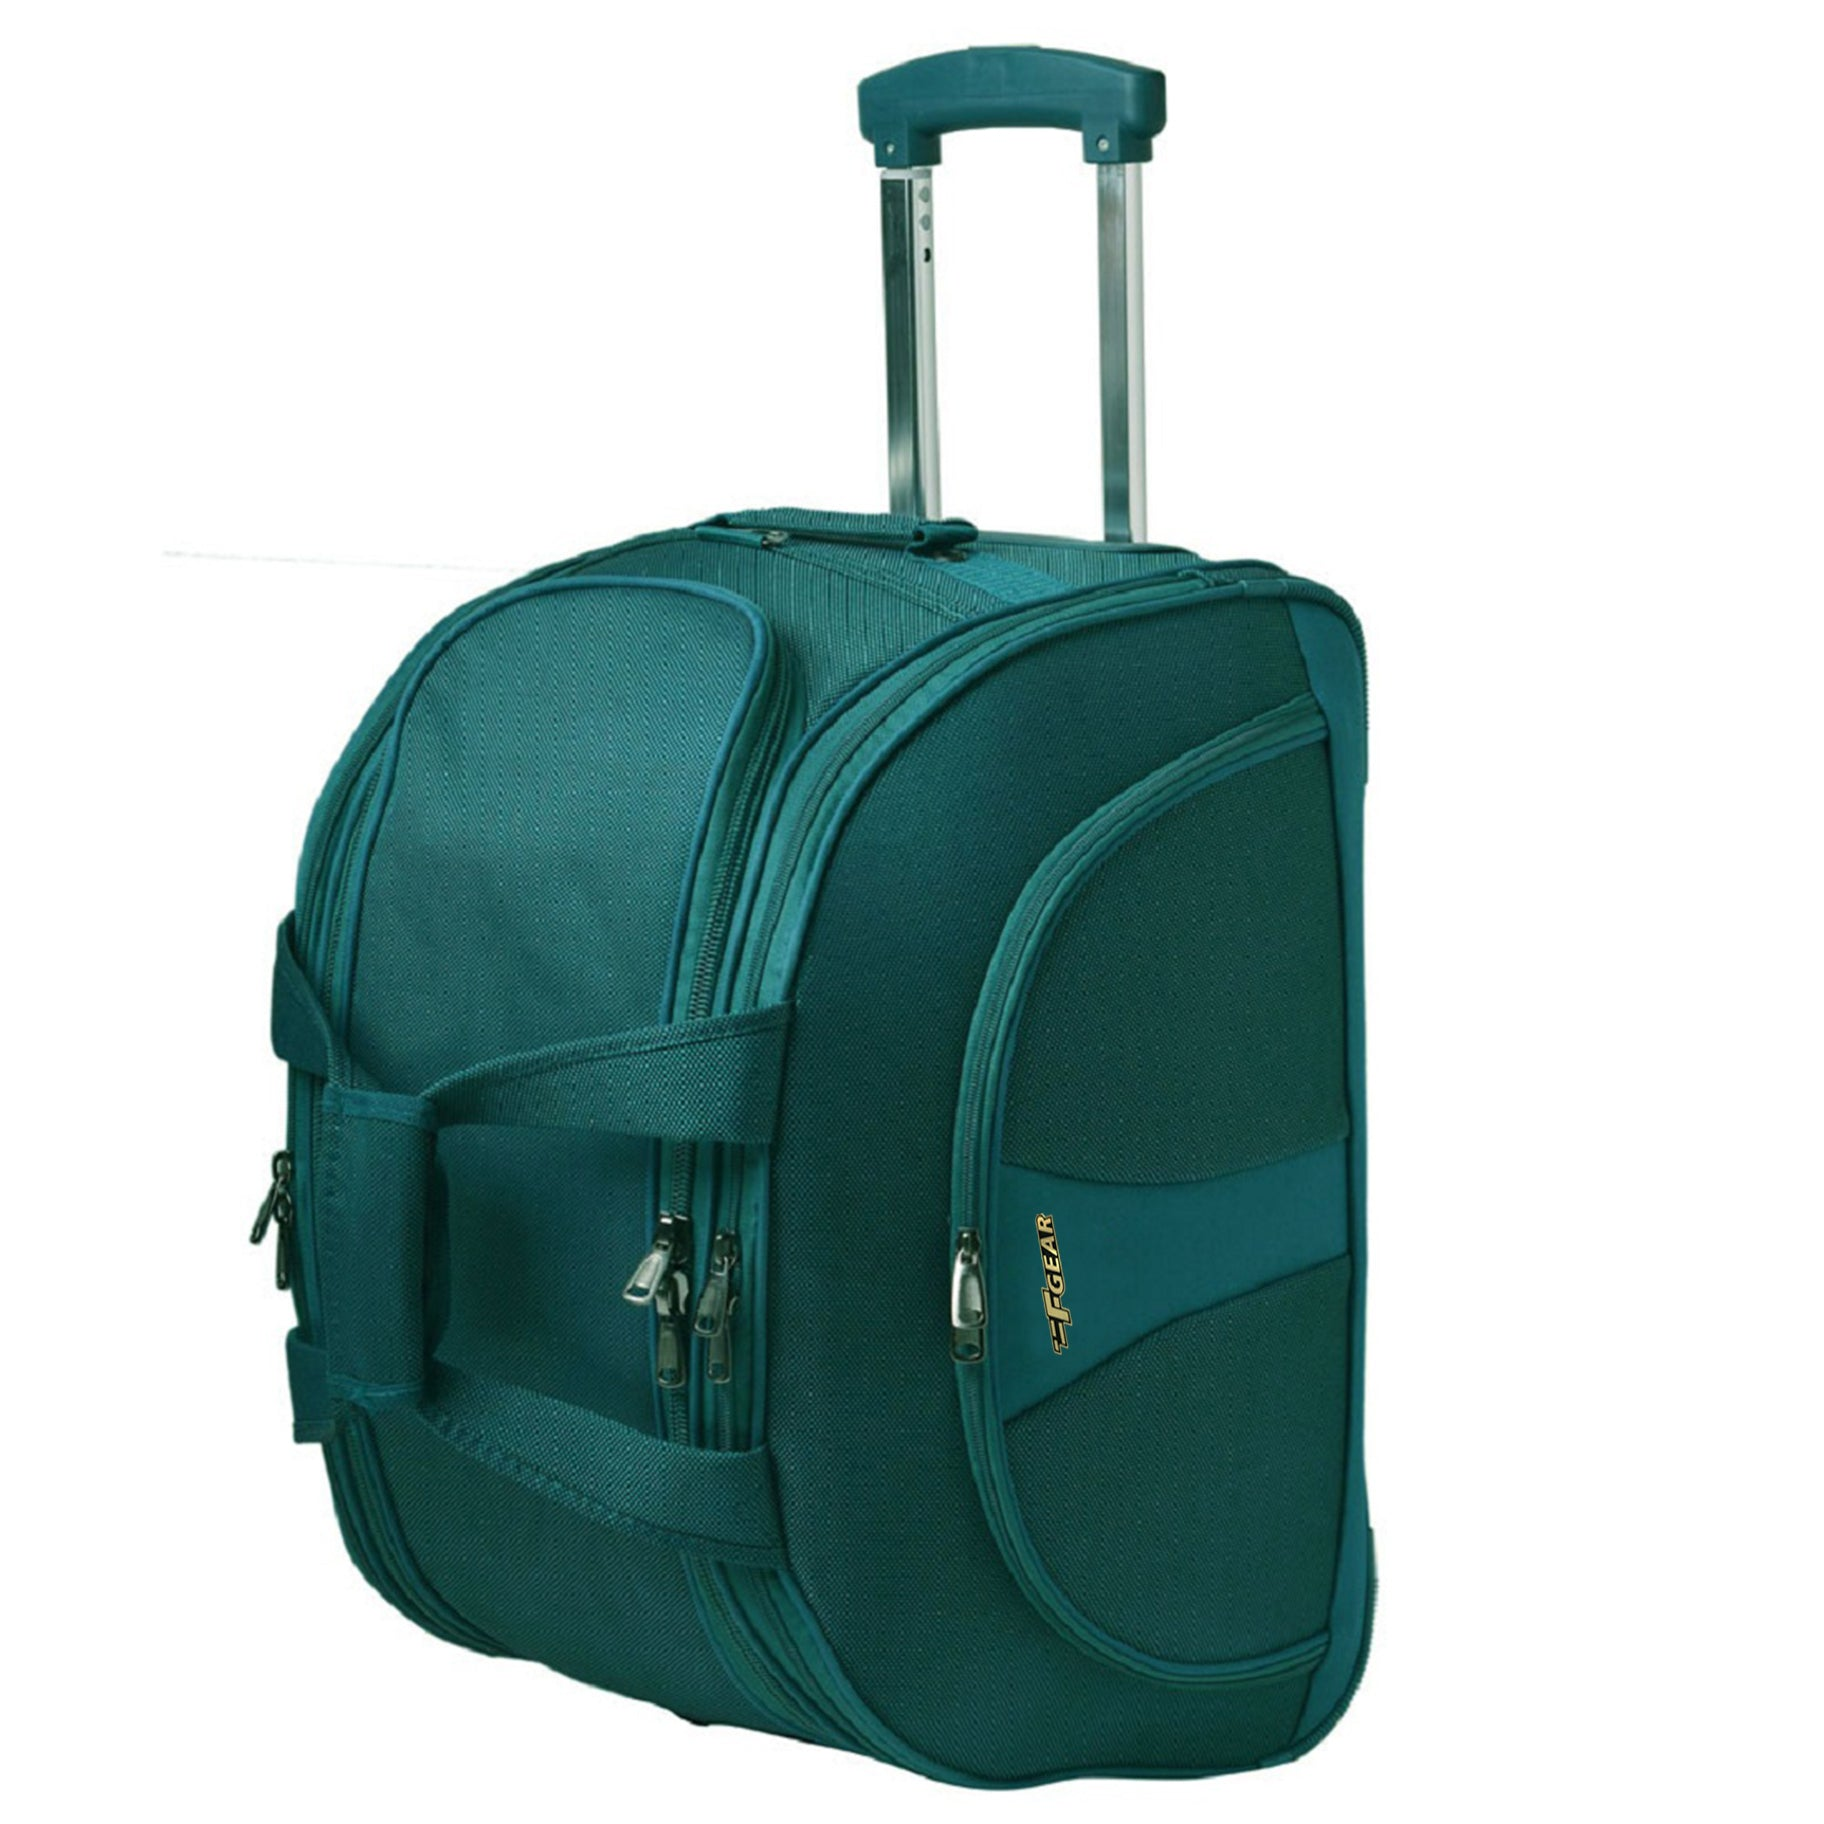 F Gear Cooter Polyester Ocean Blue Small 36 Liter Travel Duffle bag-20 inch